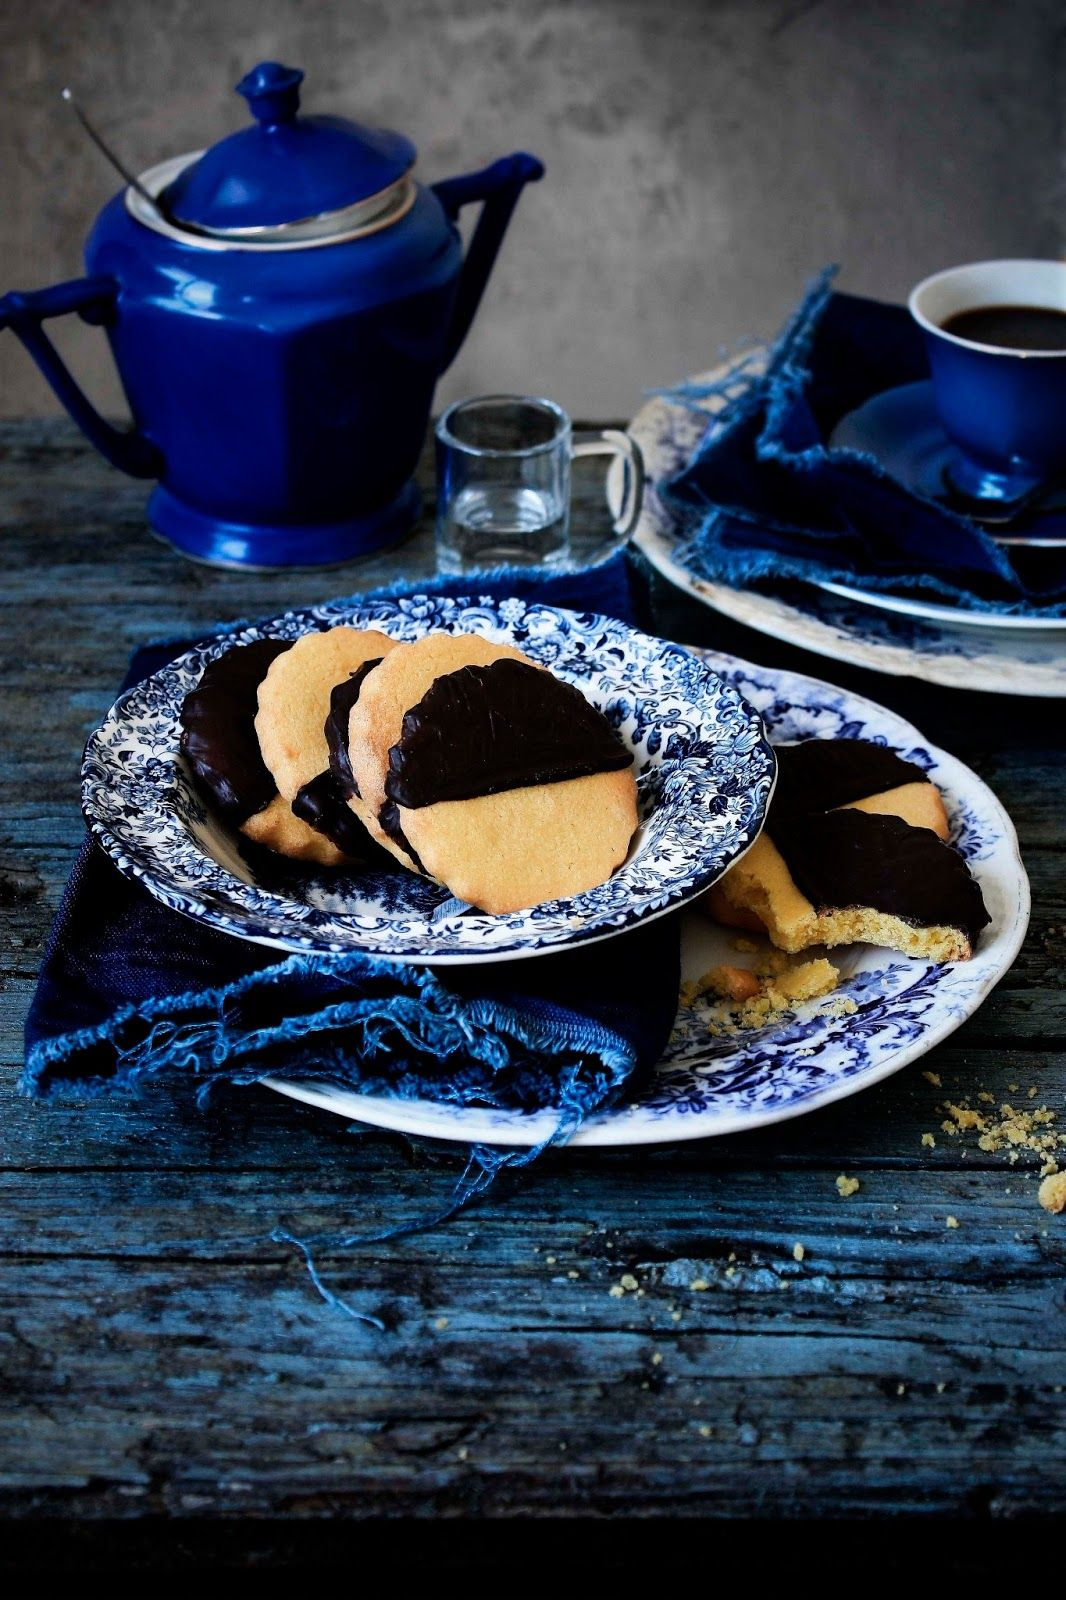 Pratos e Travessas: As minhas bolachas preferidas # My favorite cookies | Food, photography and stories